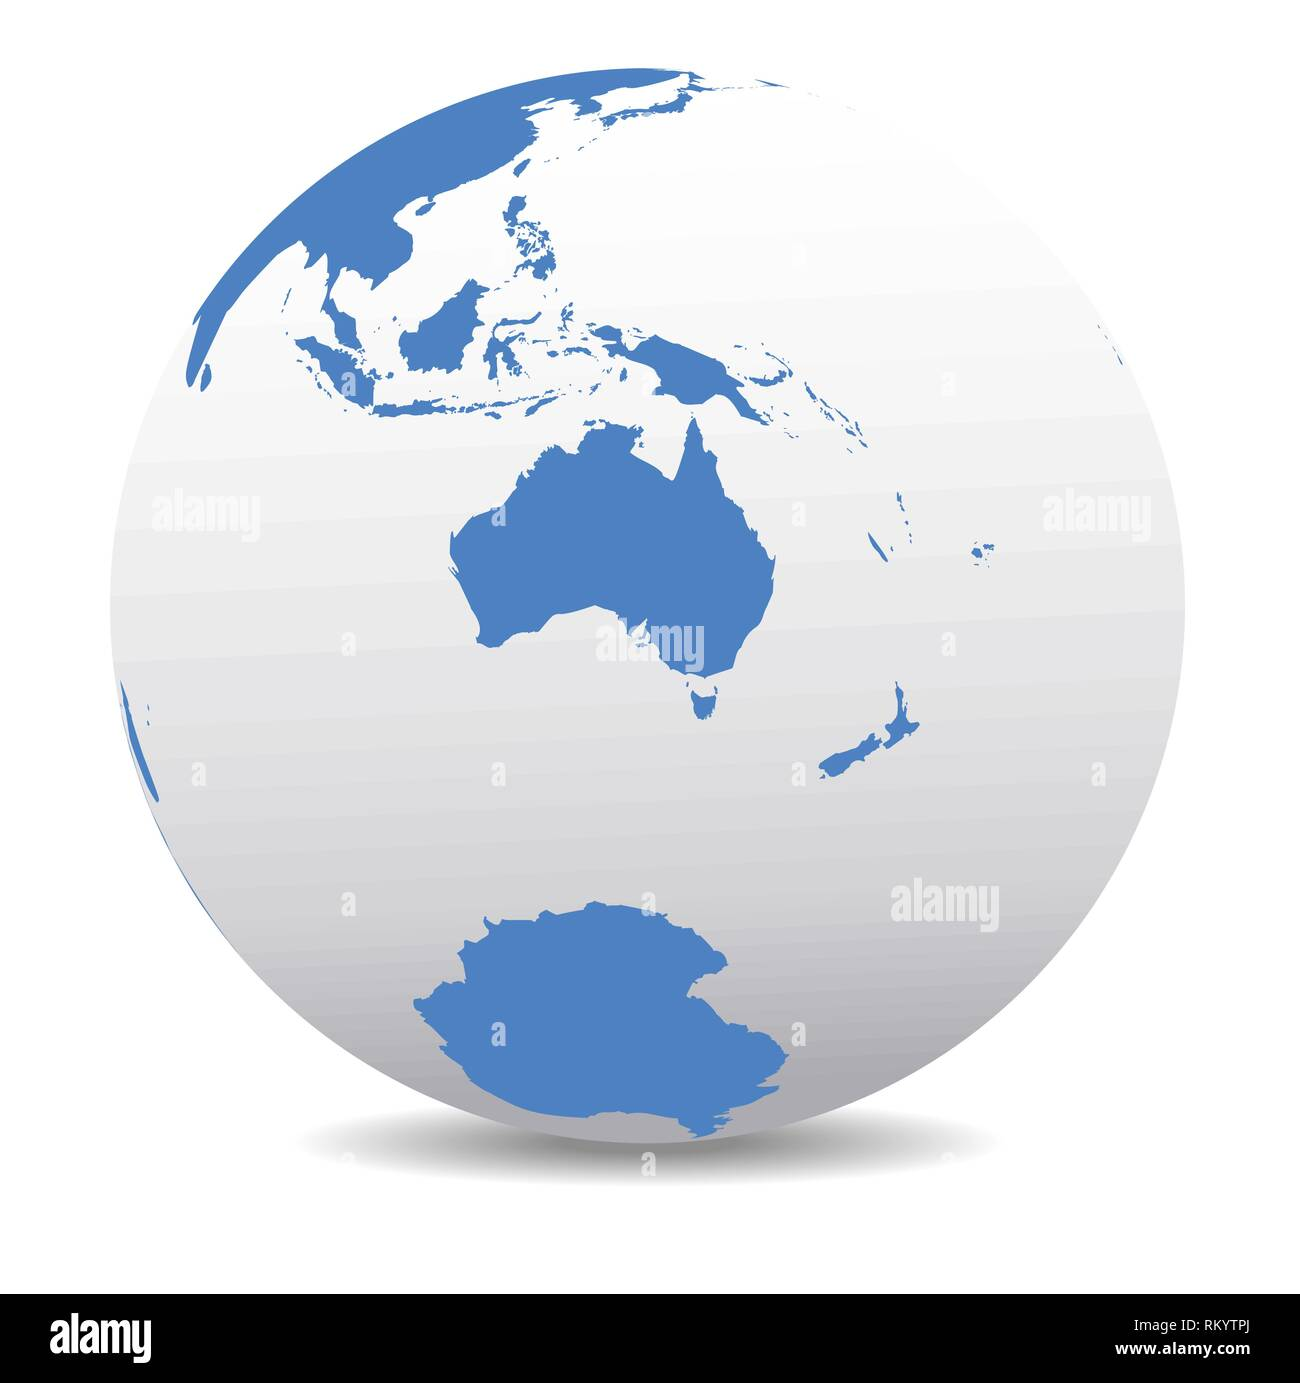 Map Showing Australia And New Zealand.Australia And New Zealand Map Stock Photos Australia And New